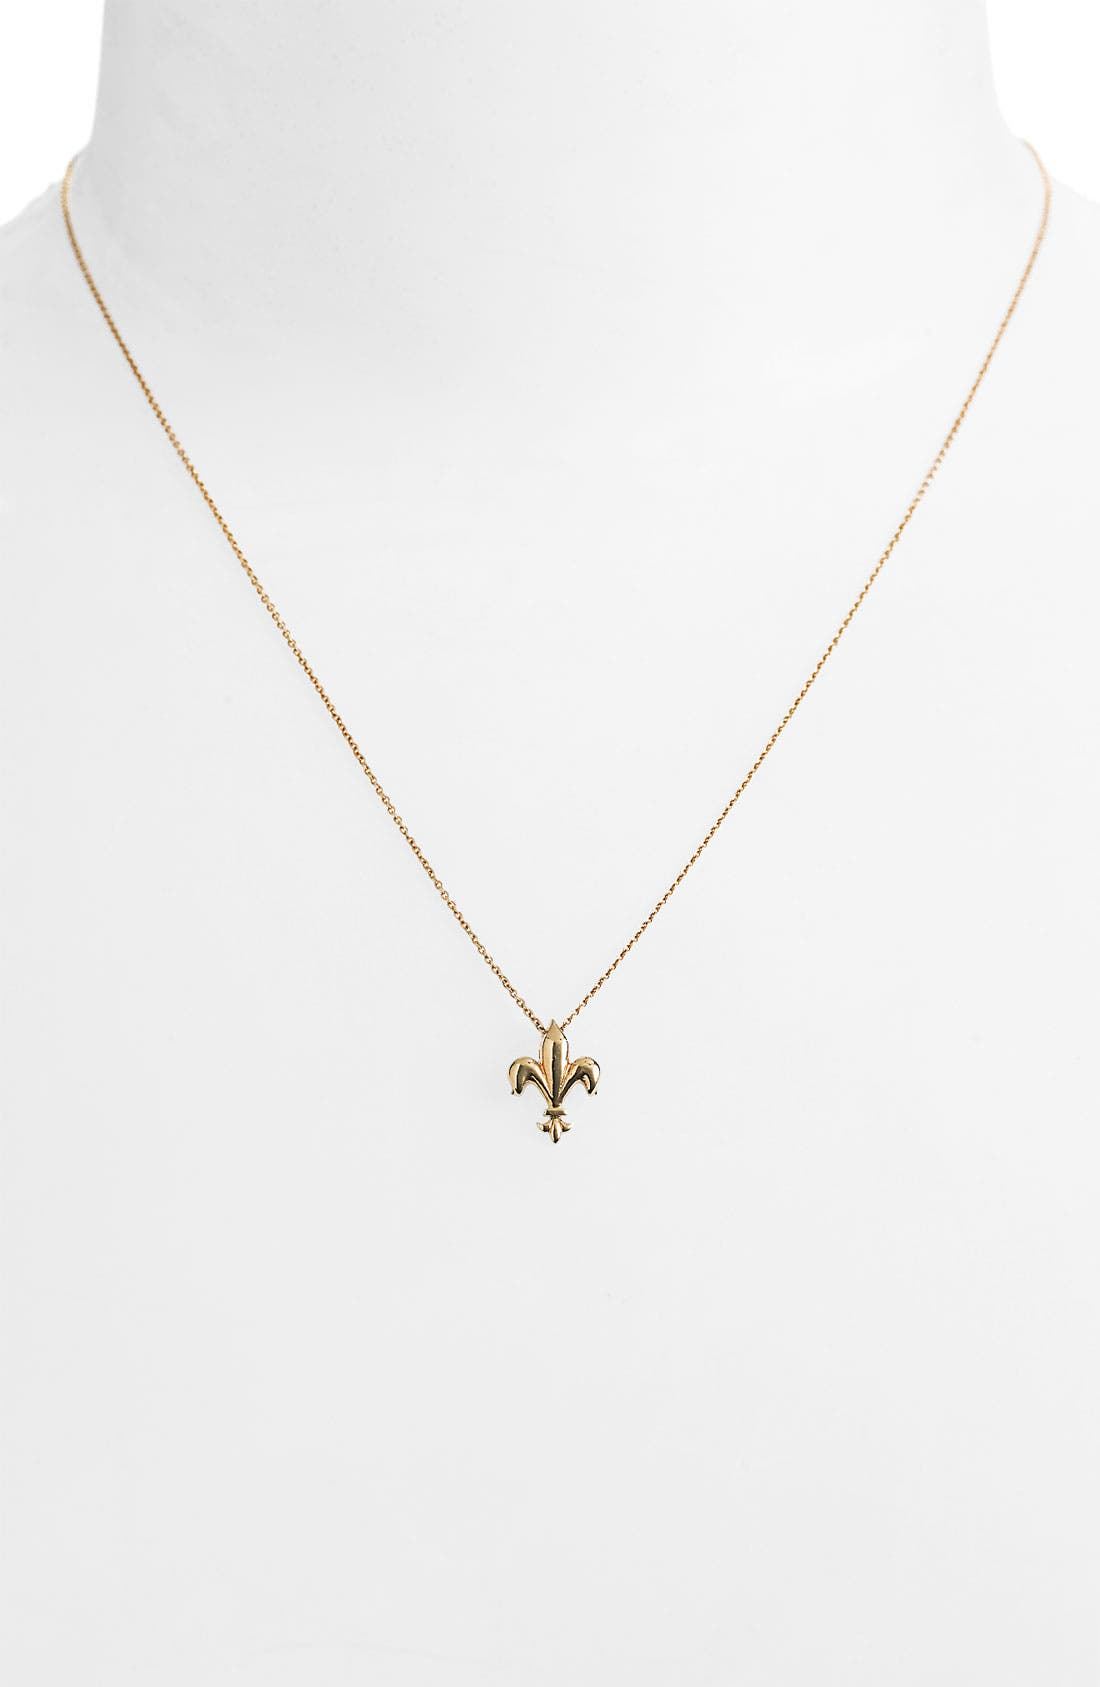 Main Image - Roberto Coin 'Tiny Treasures' Fleur de Lis Necklace